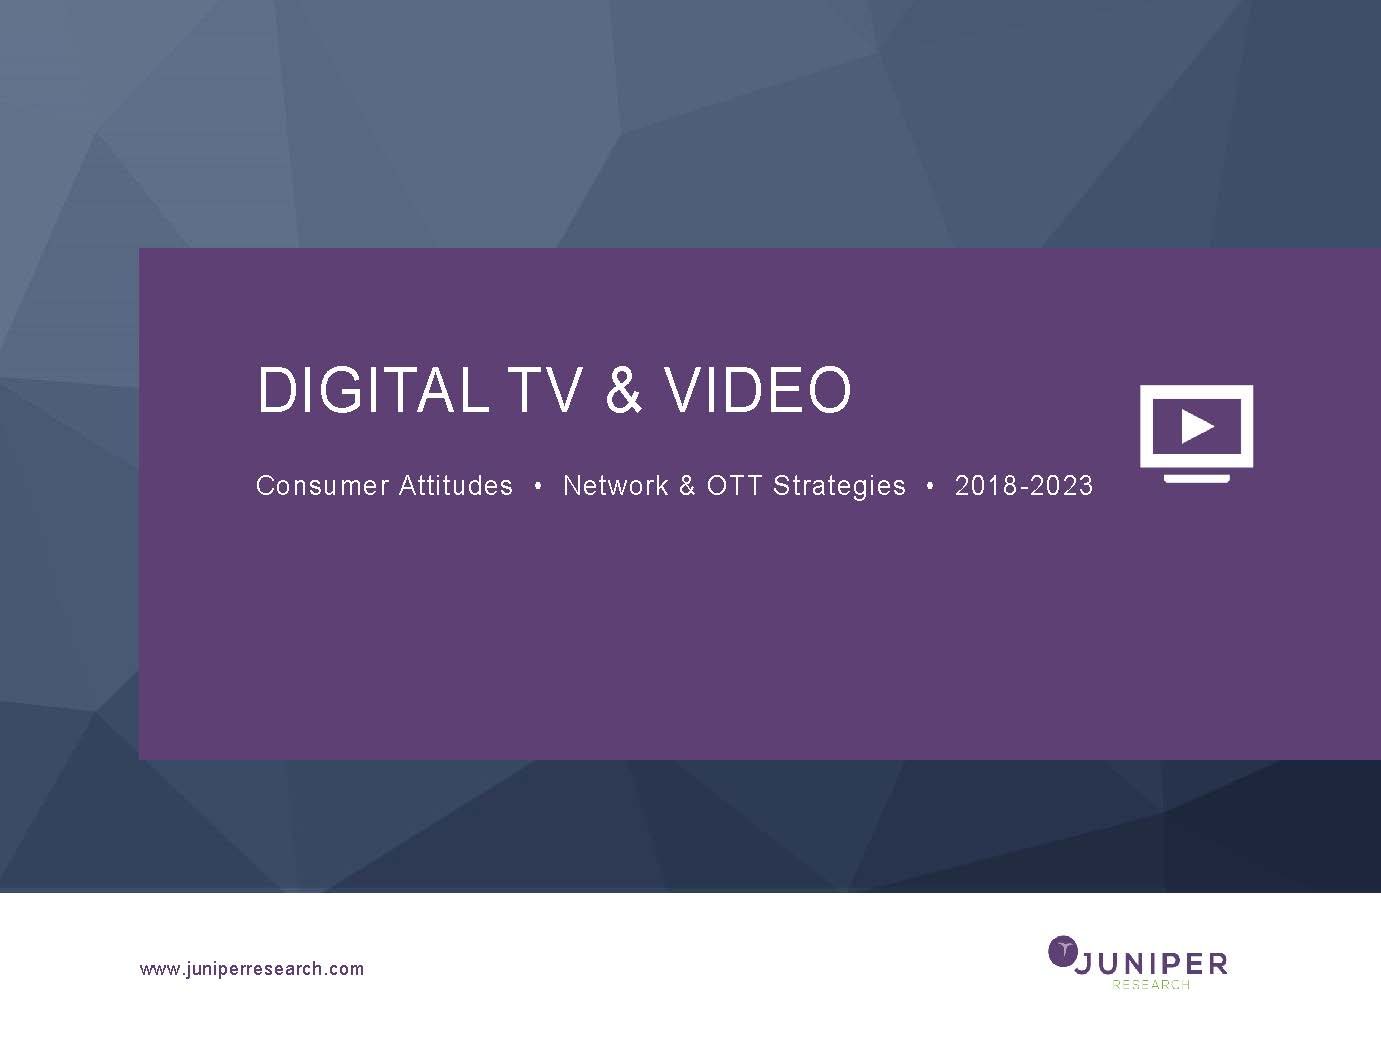 Digital TV & Video: Consumer Attitudes and Network & OTT Strategies 2018-2023